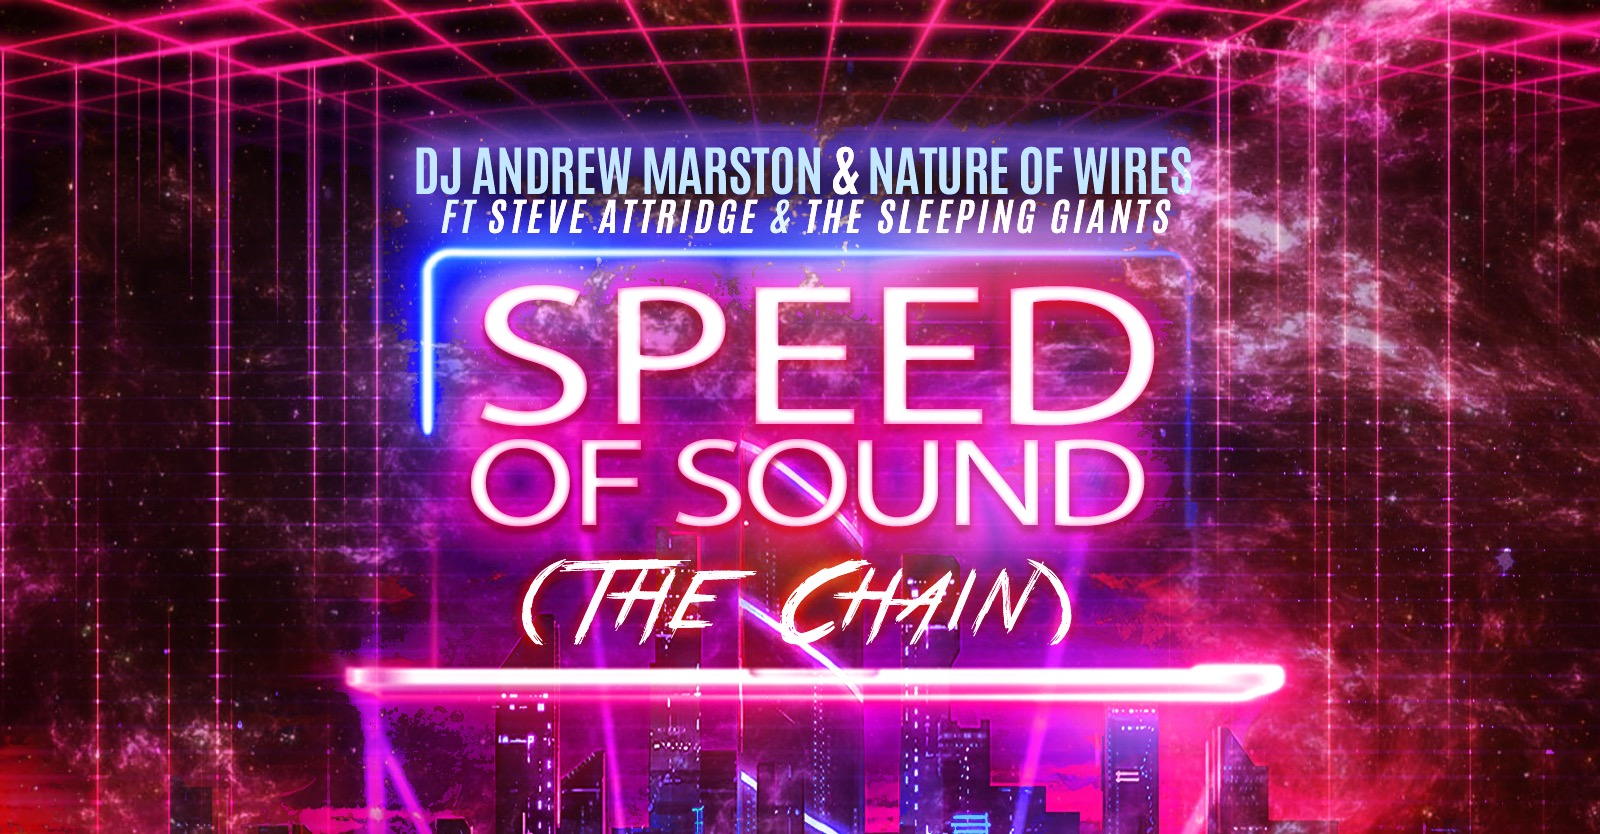 NEW SINGLE: Speed of Sound (The Chain)